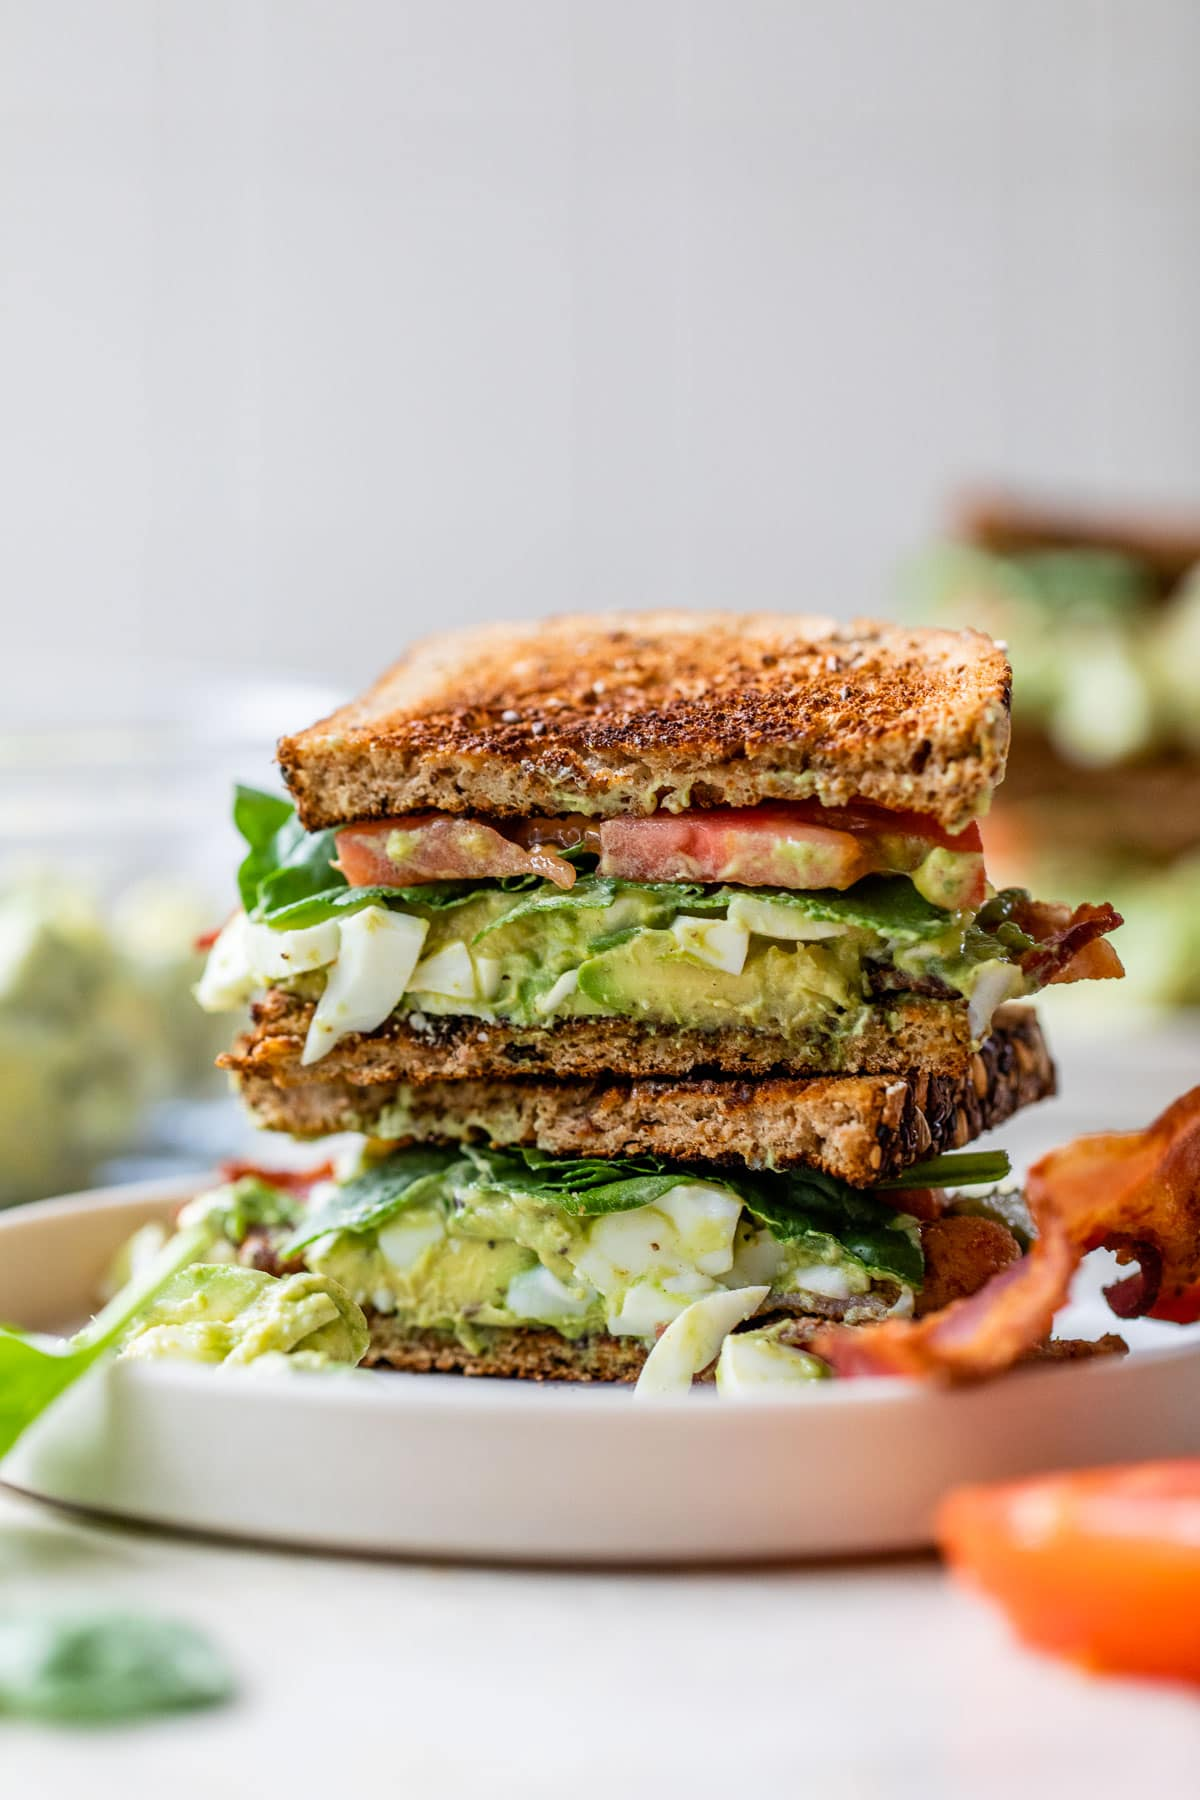 The BEST Avocado Egg Salad and Bacon Sandwiches